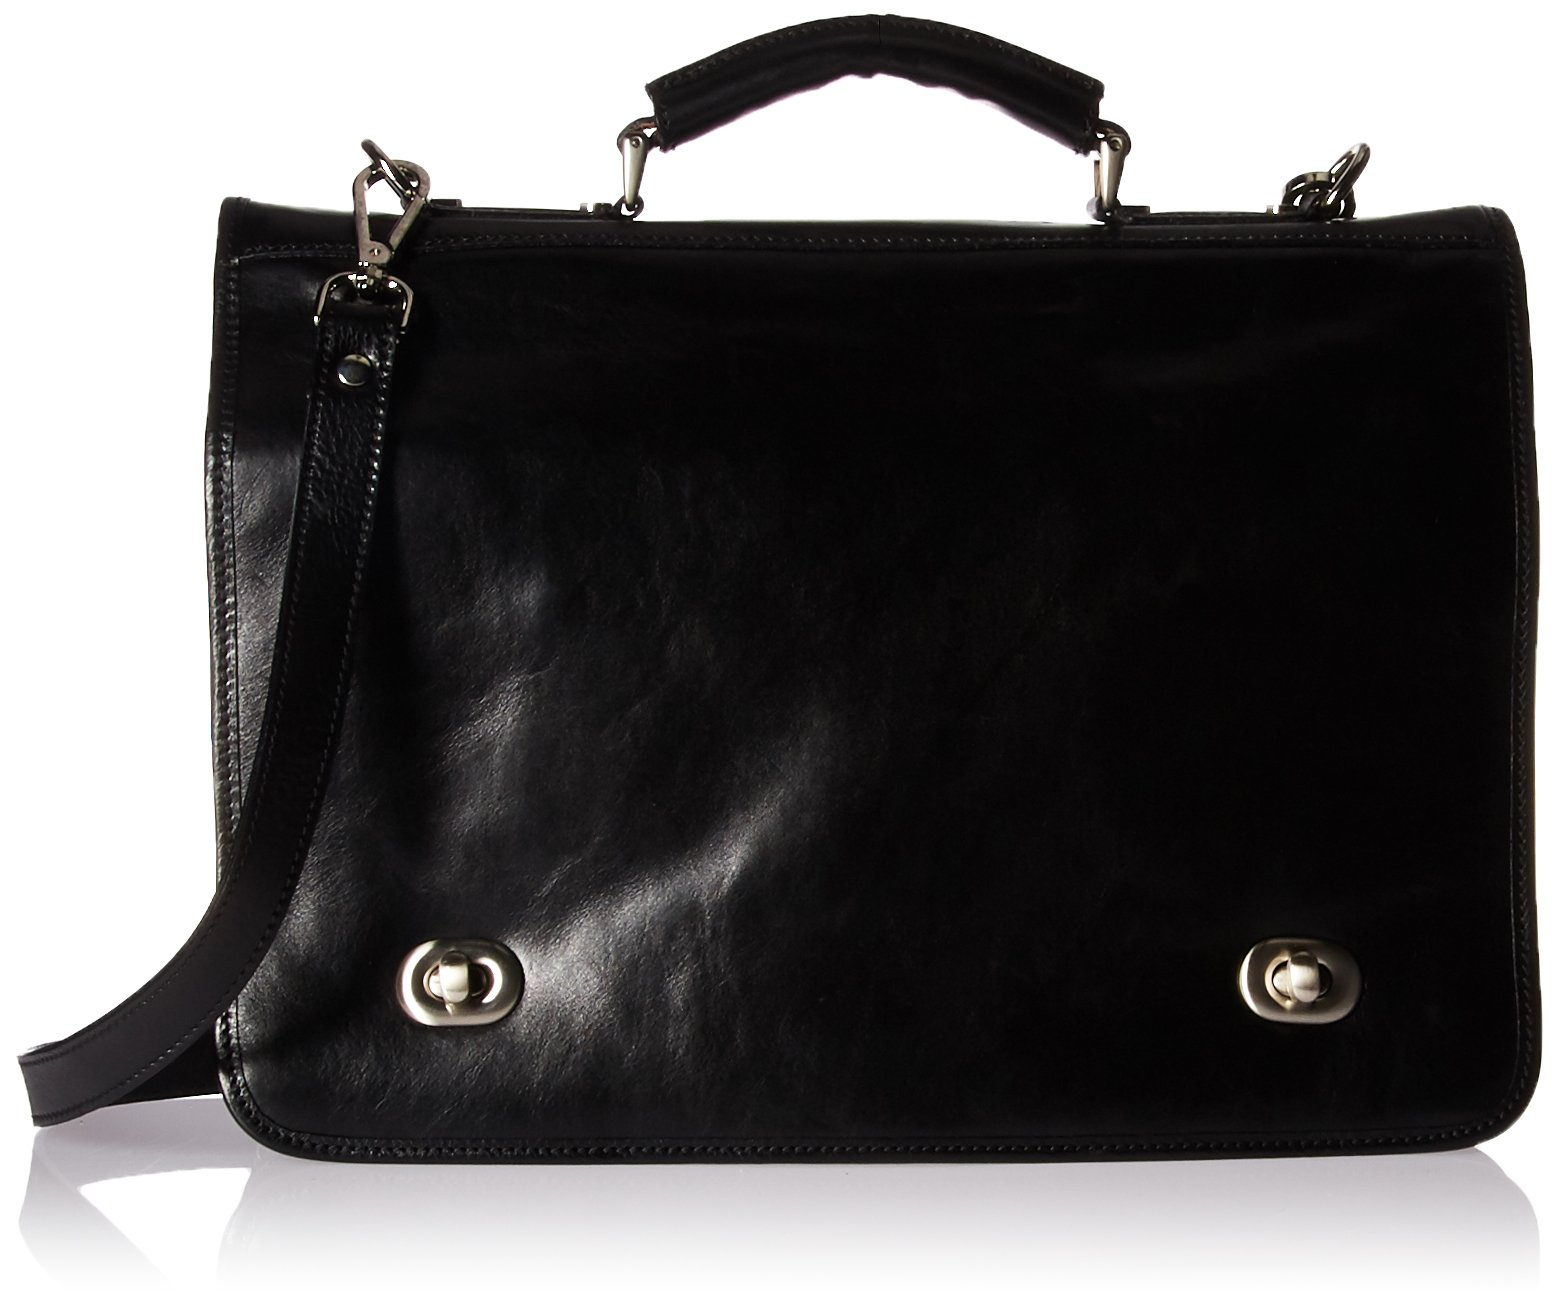 Luggage Depot USA, LLC Men's Alberto Bellucci Italian Leather Double Compartment Laptop Messenger Bag, Black, One Size